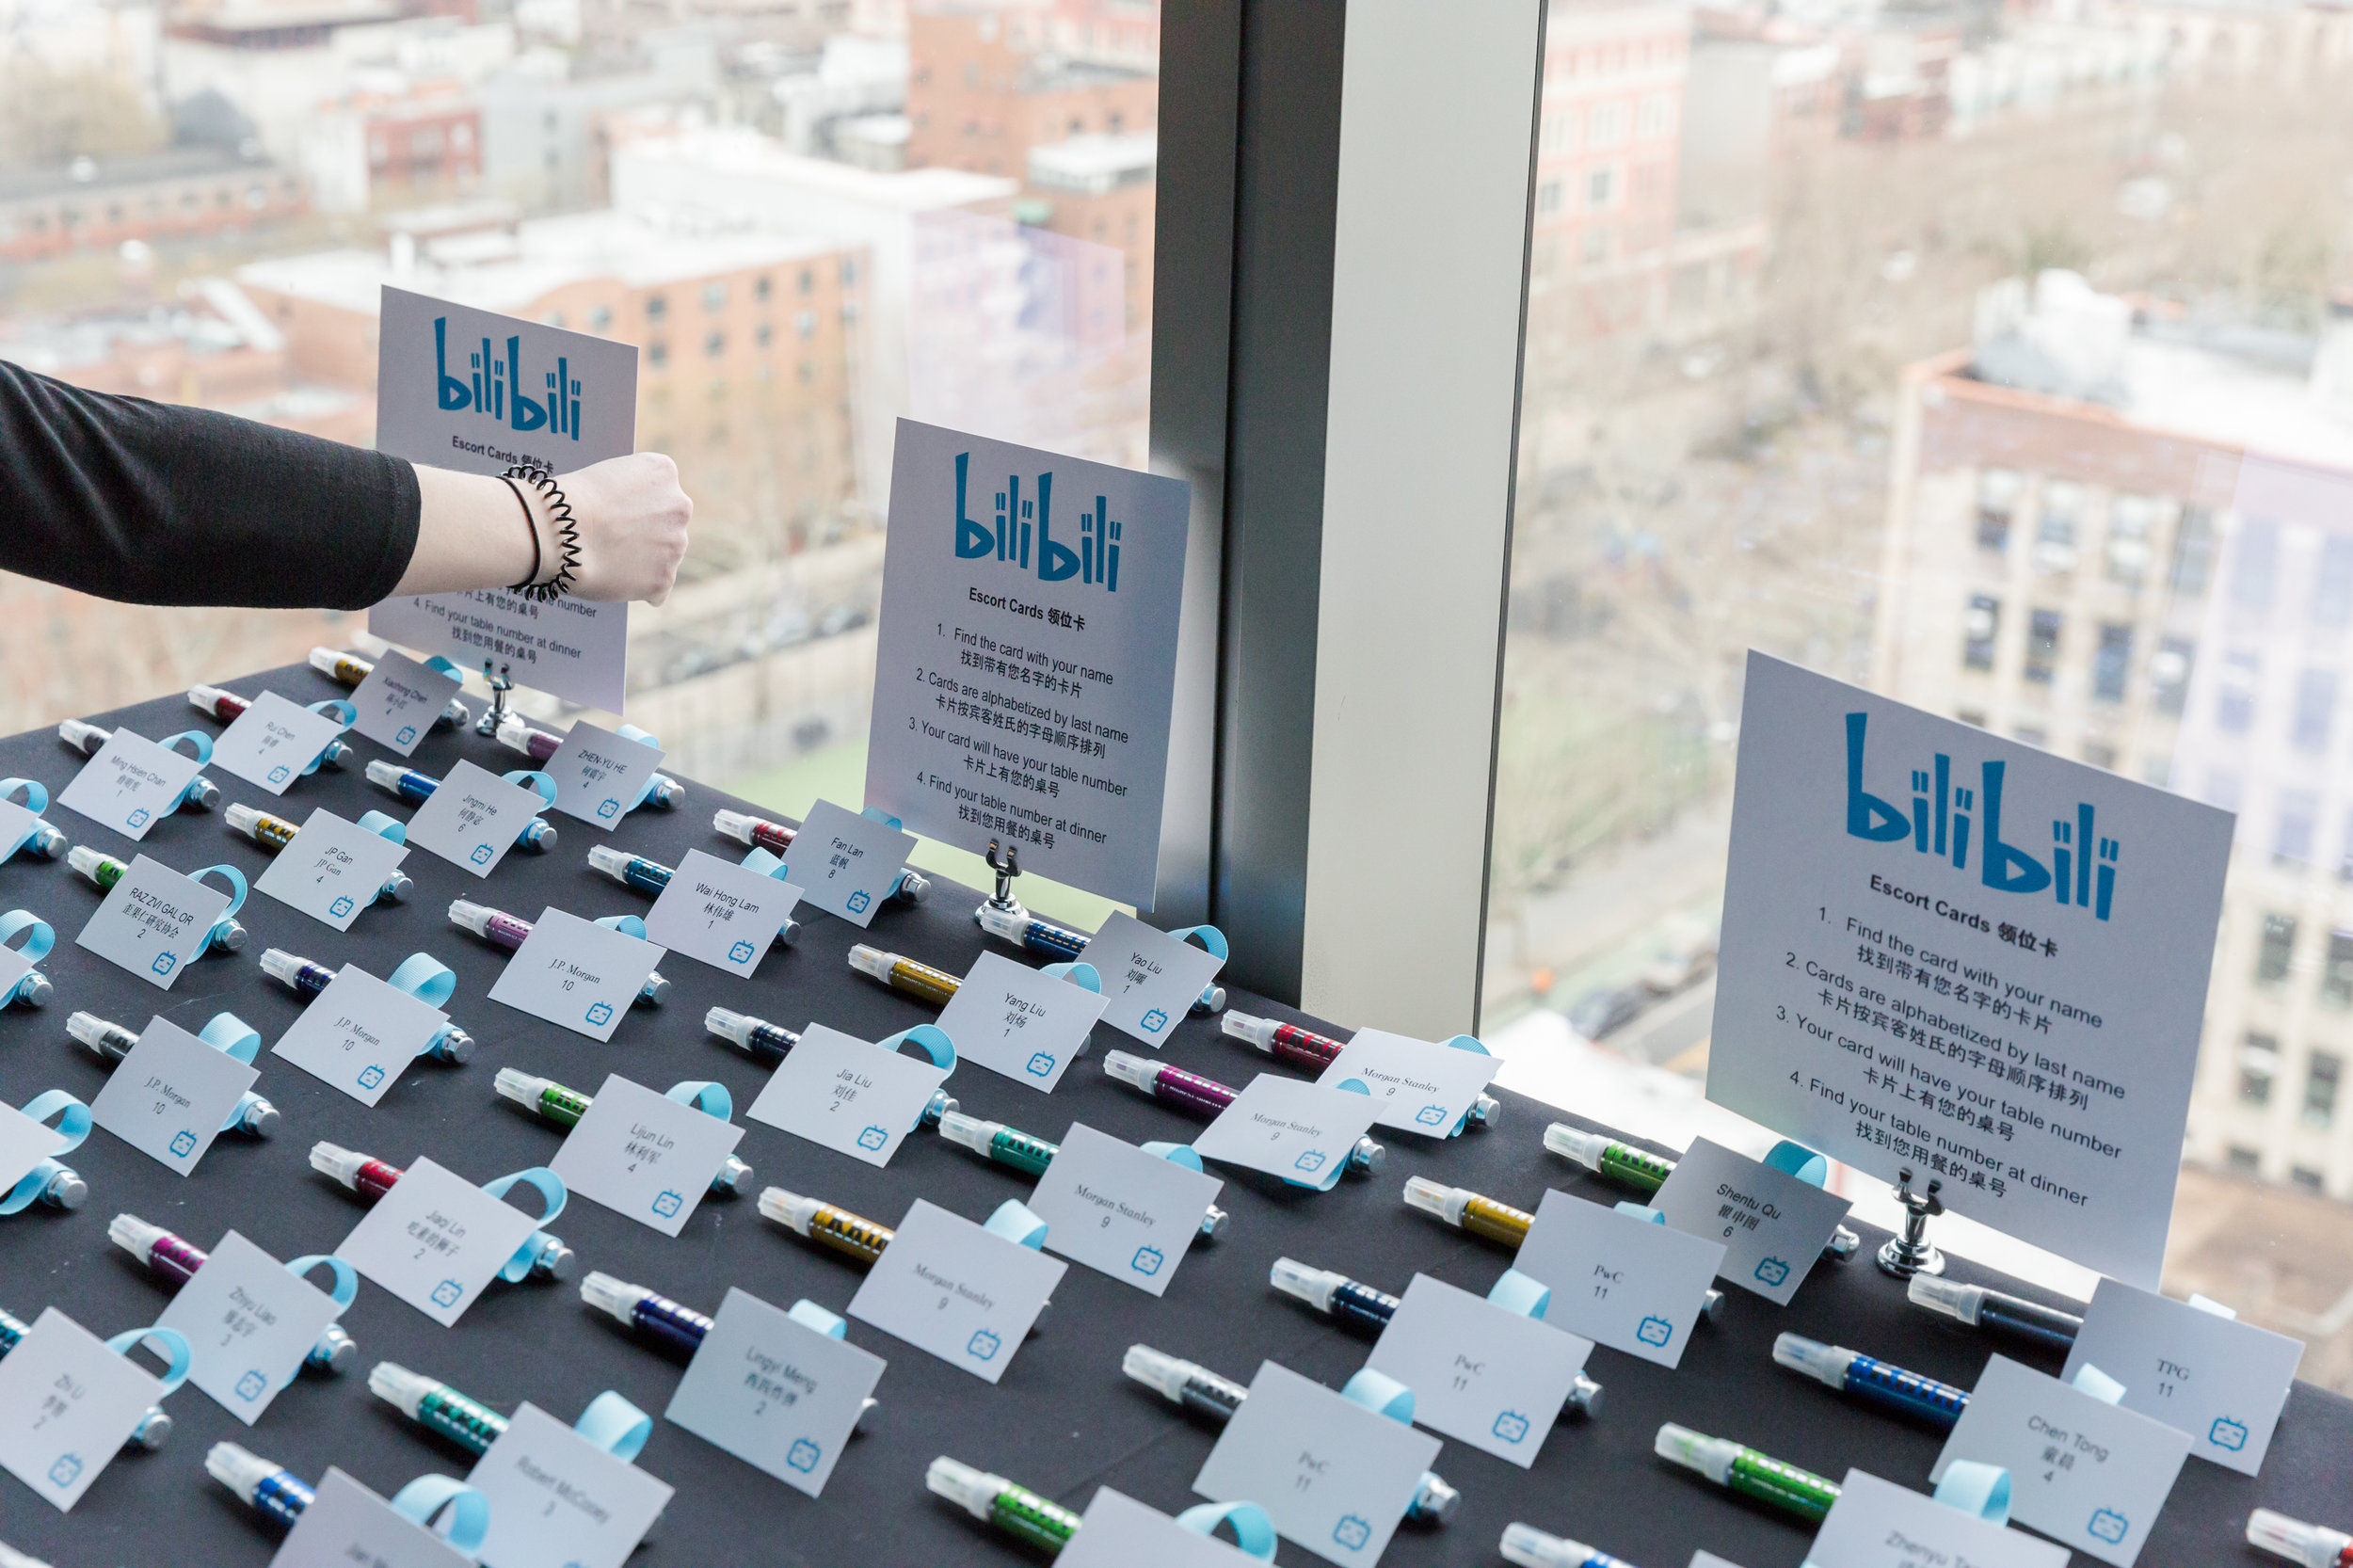 Table full of personalized escort cards with BiliBili logo